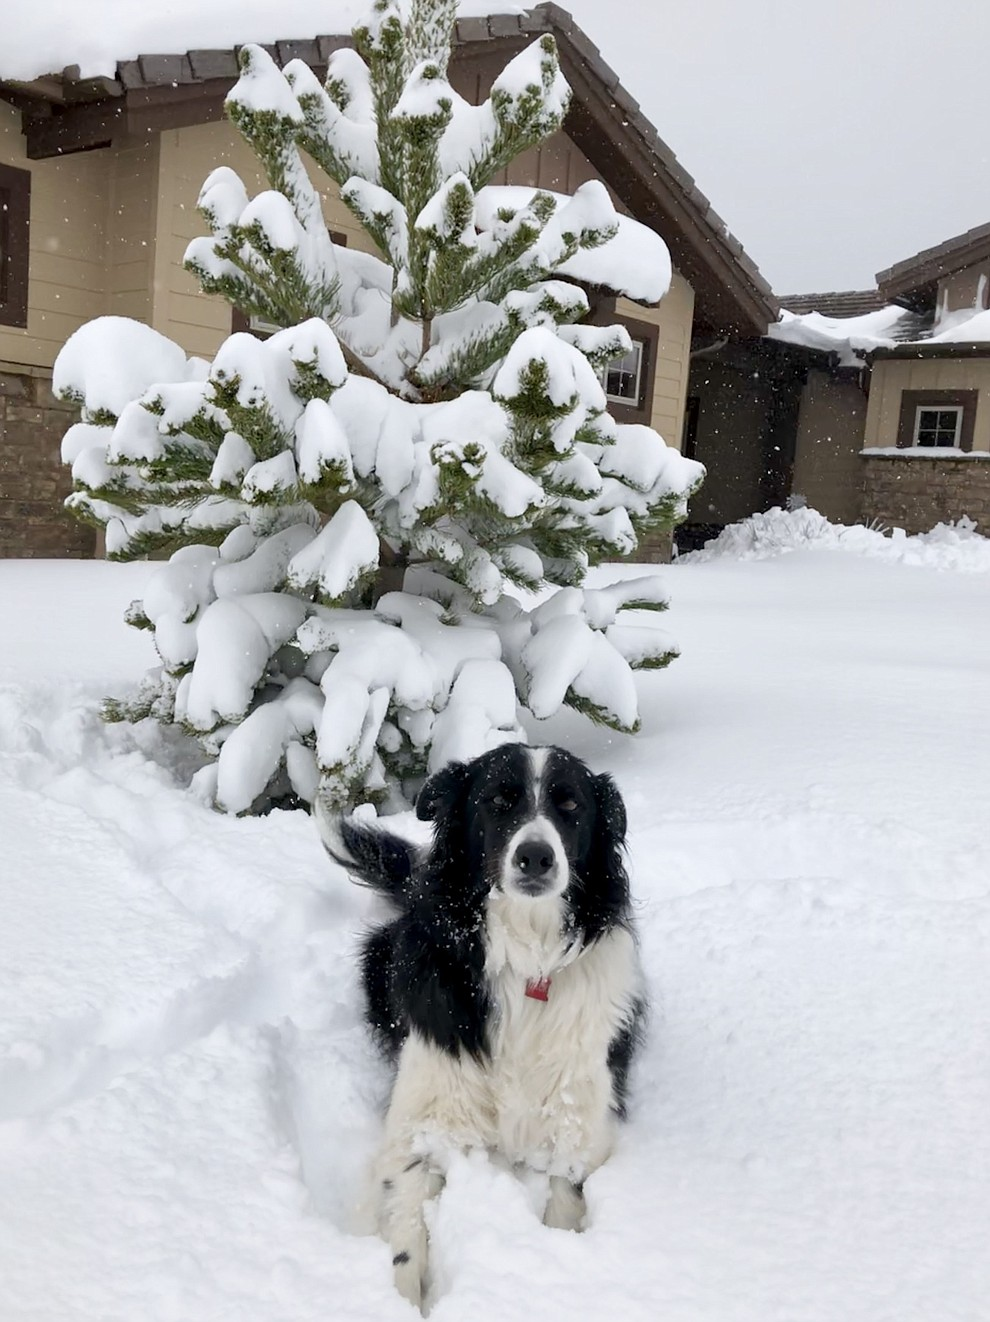 My Border Collie, Jack, hamming it up for the camera while enjoying the snow